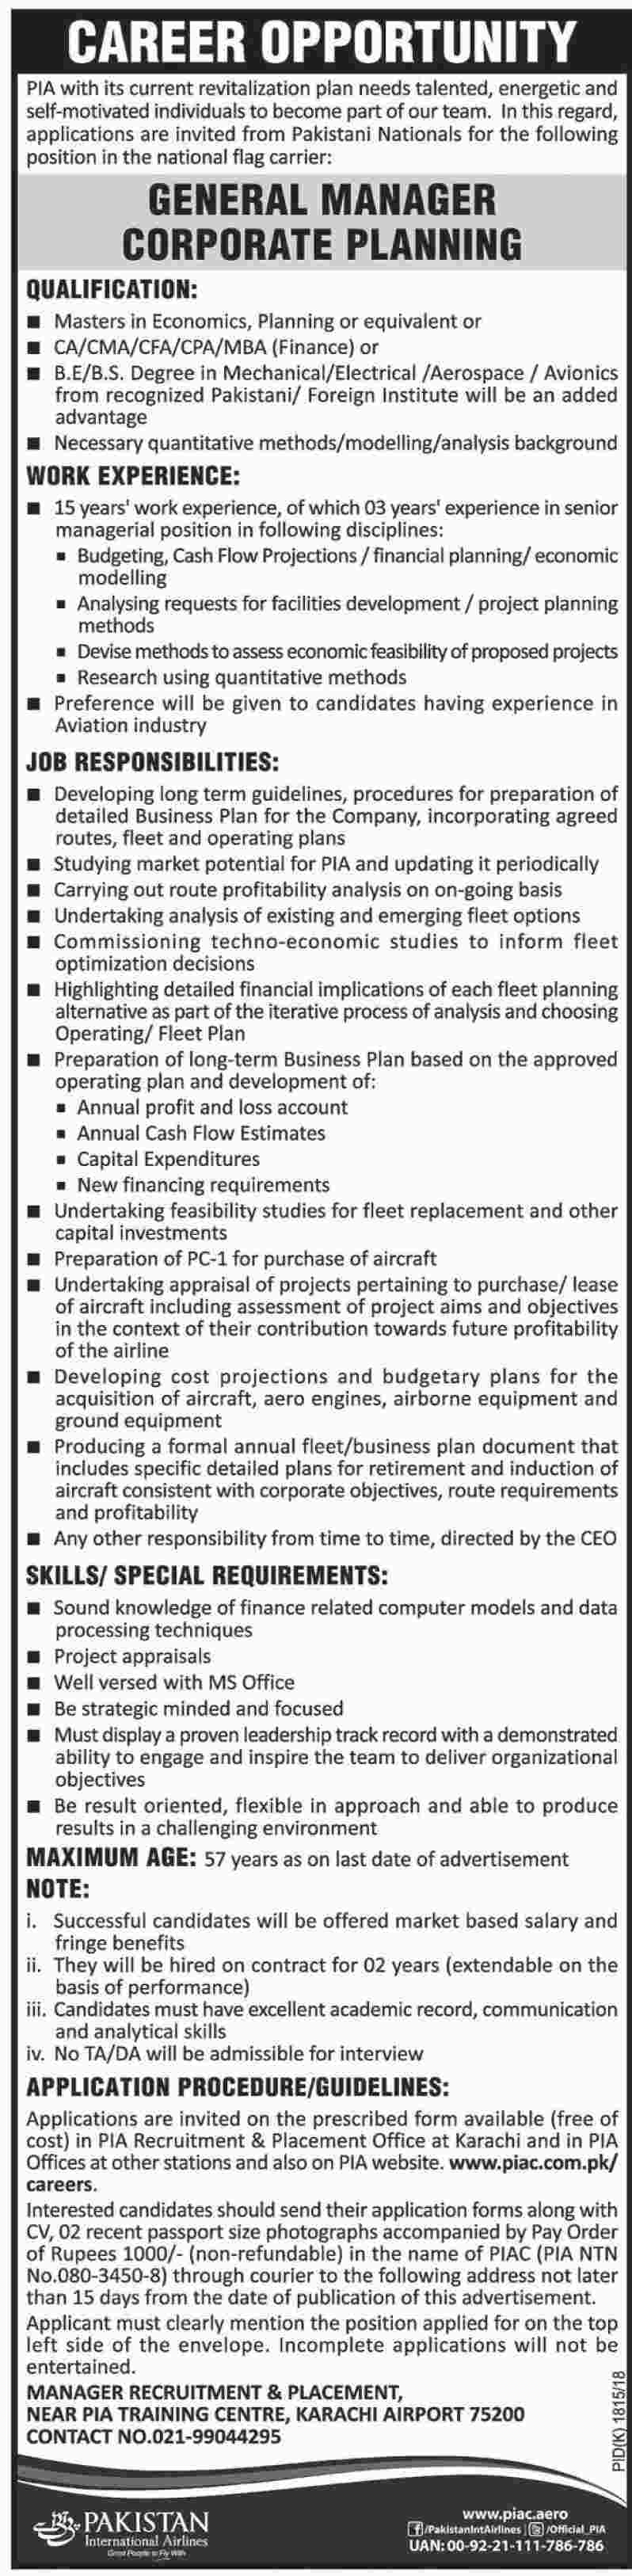 Pakistan International Airlines PIA Jobs 2017 General Manager Advertisement